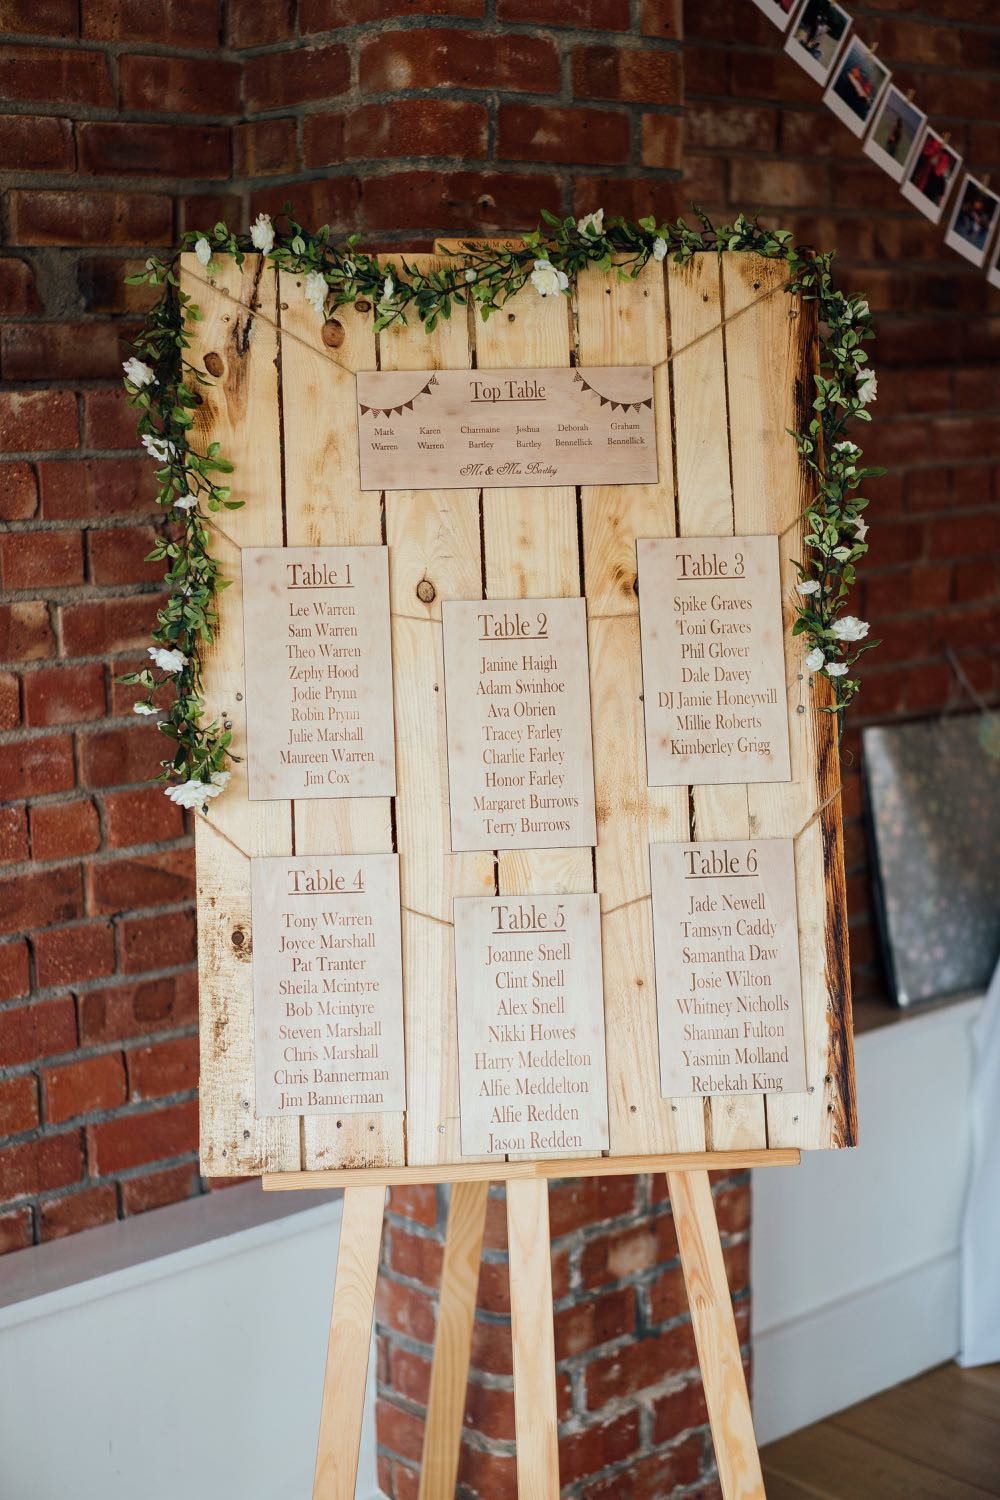 A decor detail shot of a table plan. With cards for each table. Teh plan is on our easel and there are flowers decorating the edge of the frame